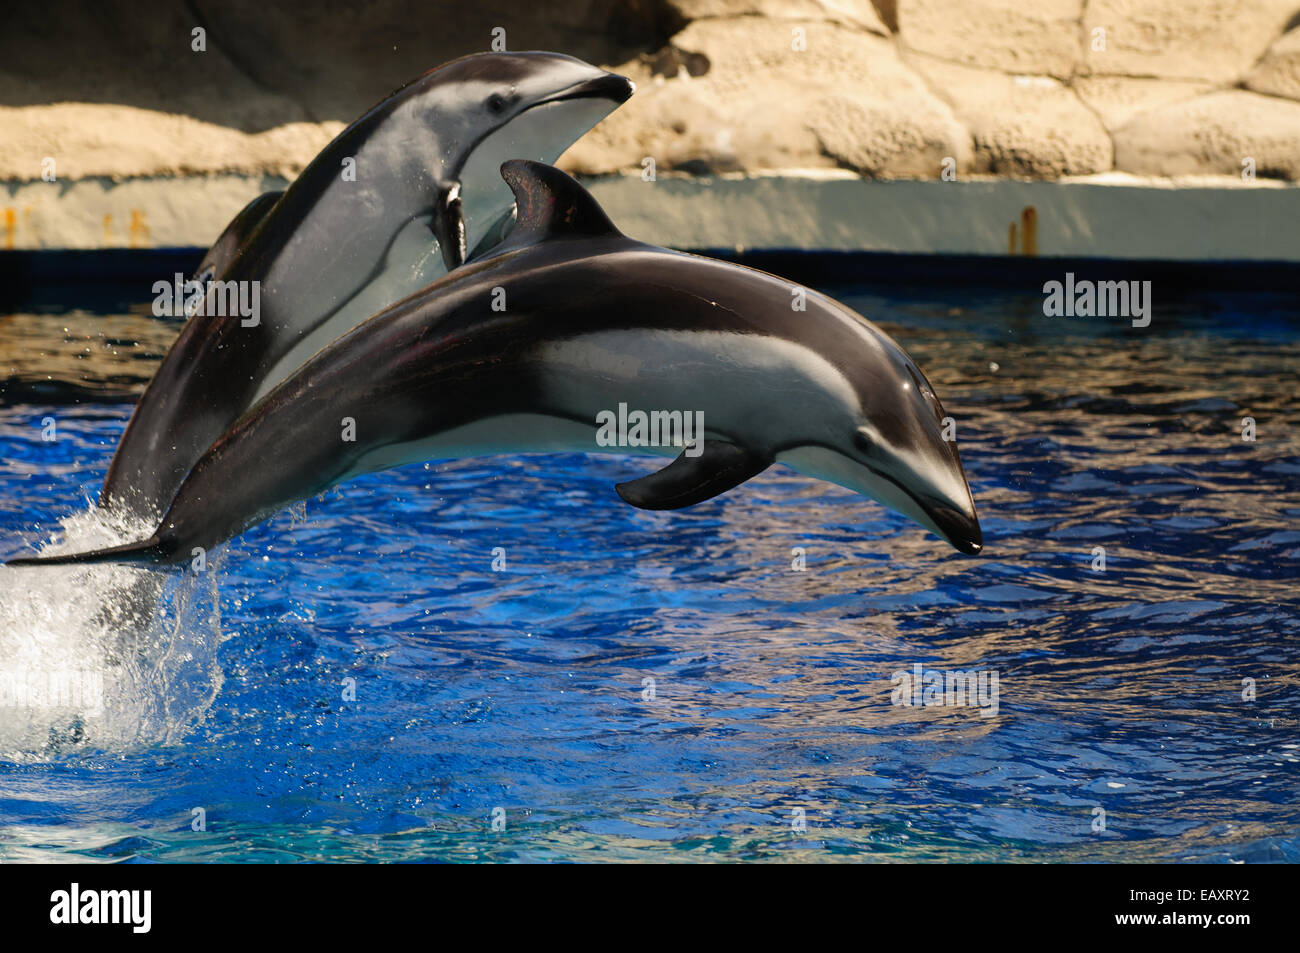 Jumping Pacific Whitesided Dolphins during a show in Vancouver Aquarium - Stock Image